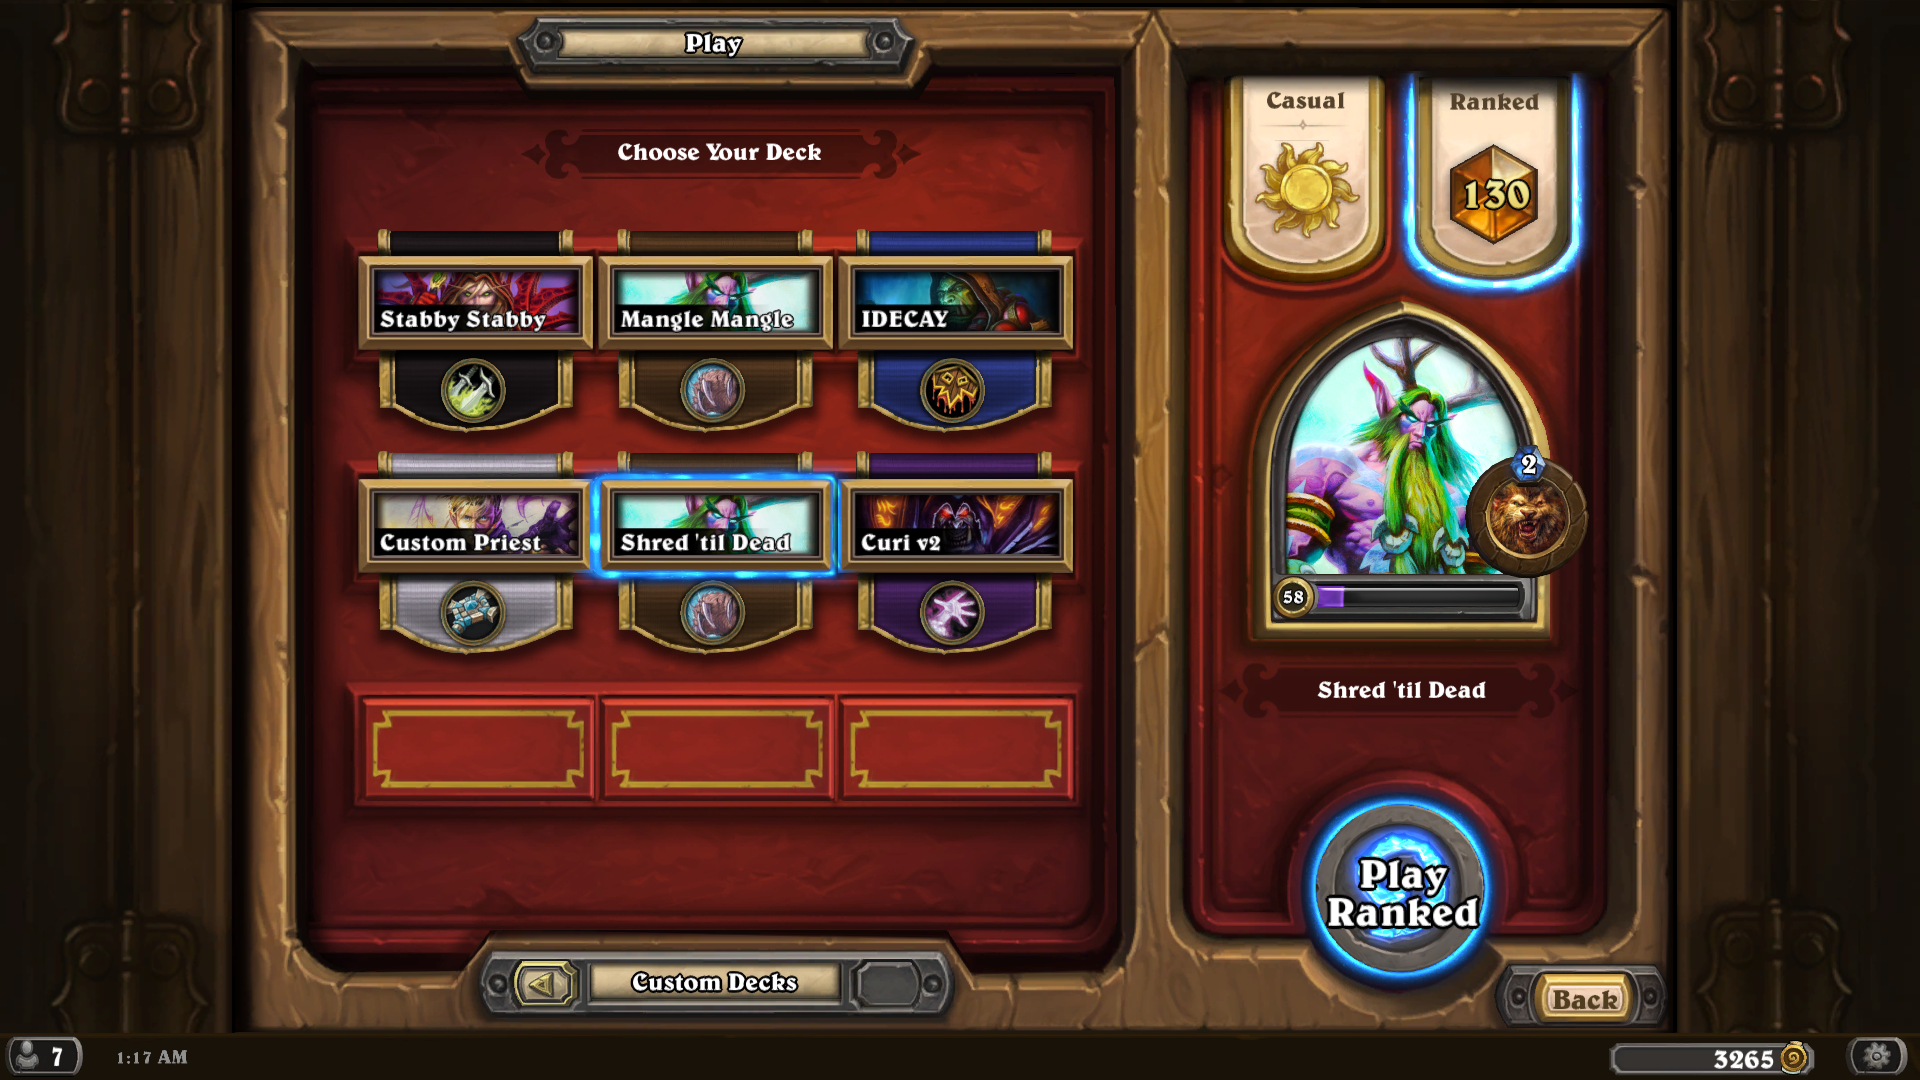 slott games easy super with cheese decks heroic beating naxx here brag about hearthstone